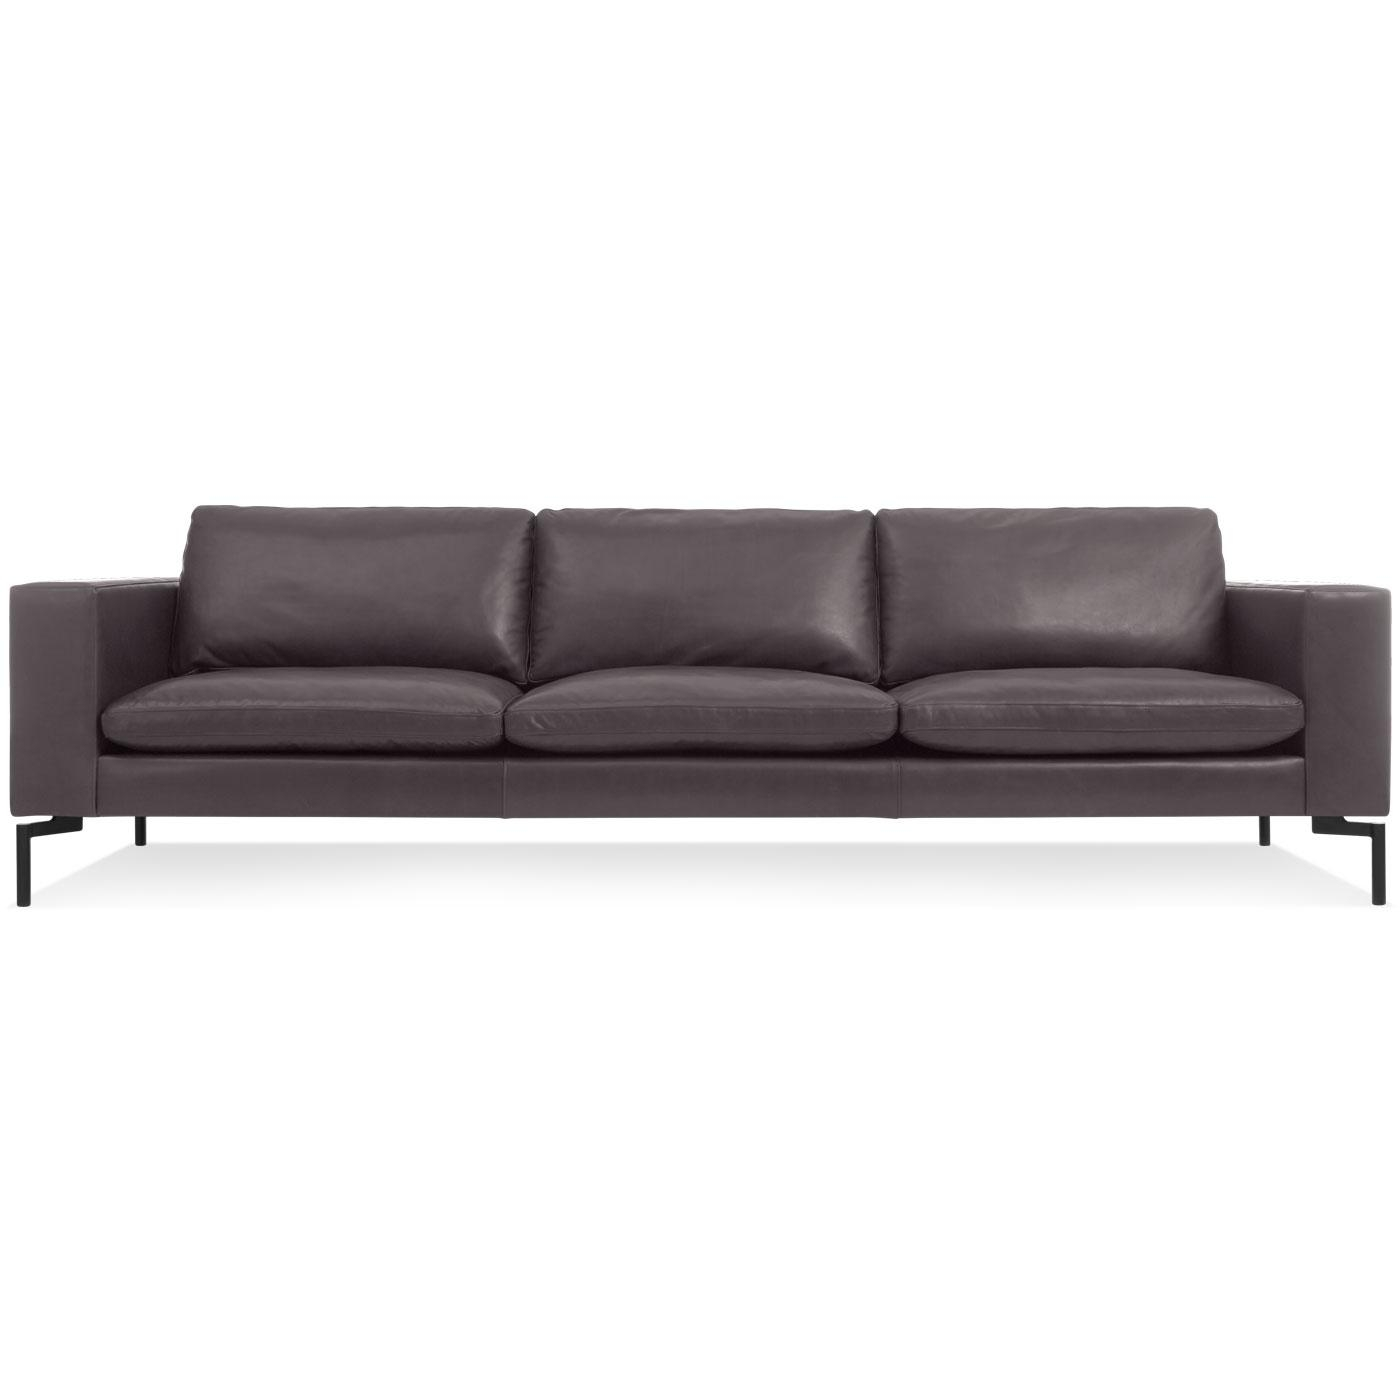 New Standard 104 Inch Leather Sofa - Modern Sofas And Sectionals with 4 Seat Leather Sofas